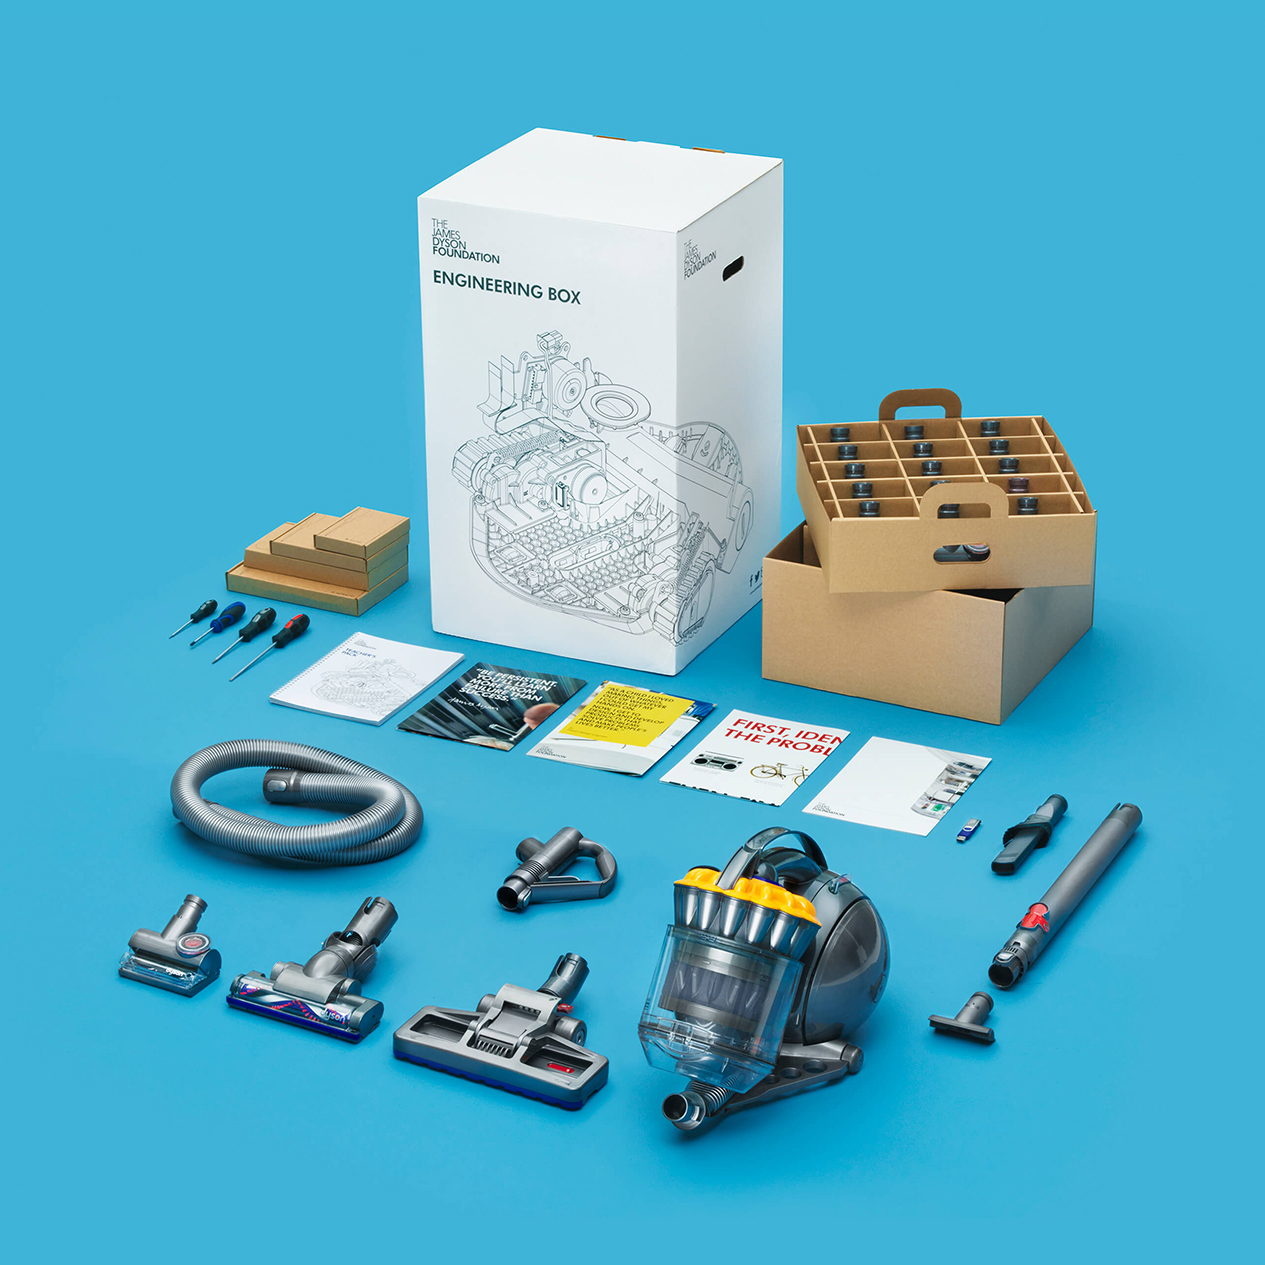 James Dyson Foundation engineering box school resource containing a Dyson vacuum cleaner, cleaner heads, screwdrivers, teacher's pack and posters.